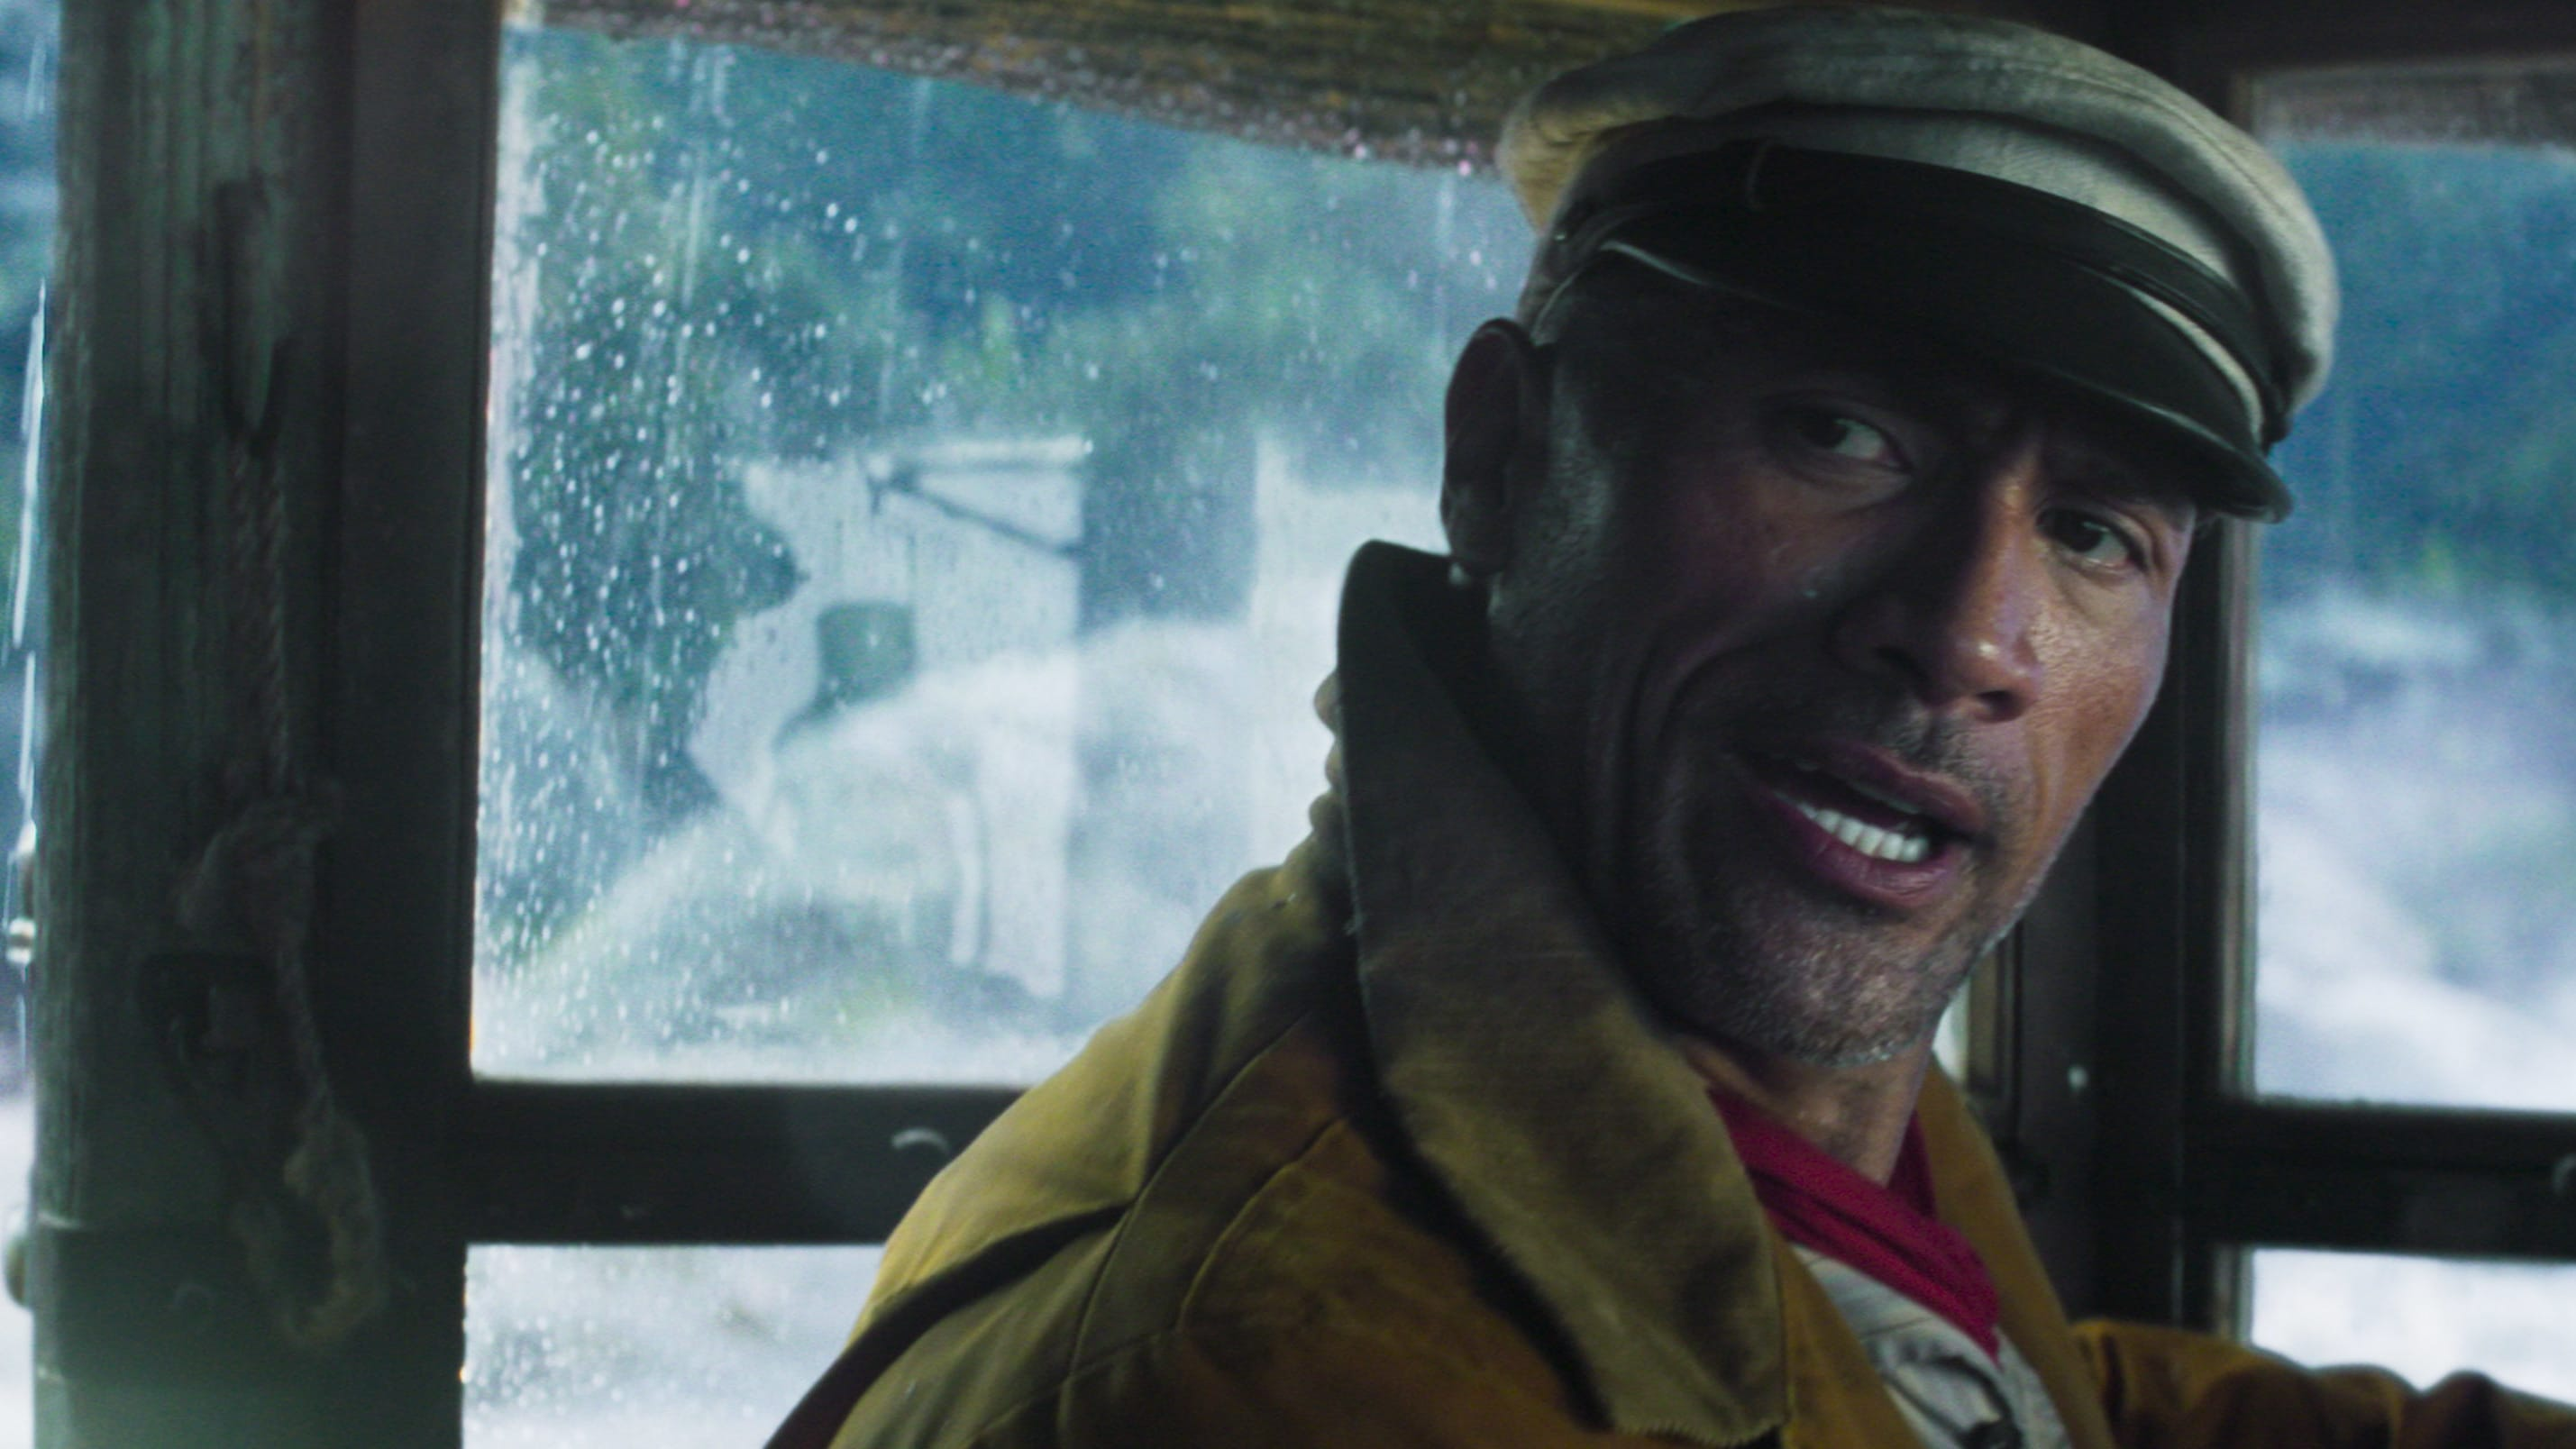 Dwayne Johnson as Frank Wolff in Disney's JUNGLE CRUISE. Photo courtesy of Disney. © 2021 Disney Enterprises, Inc. All Rights Reserved.